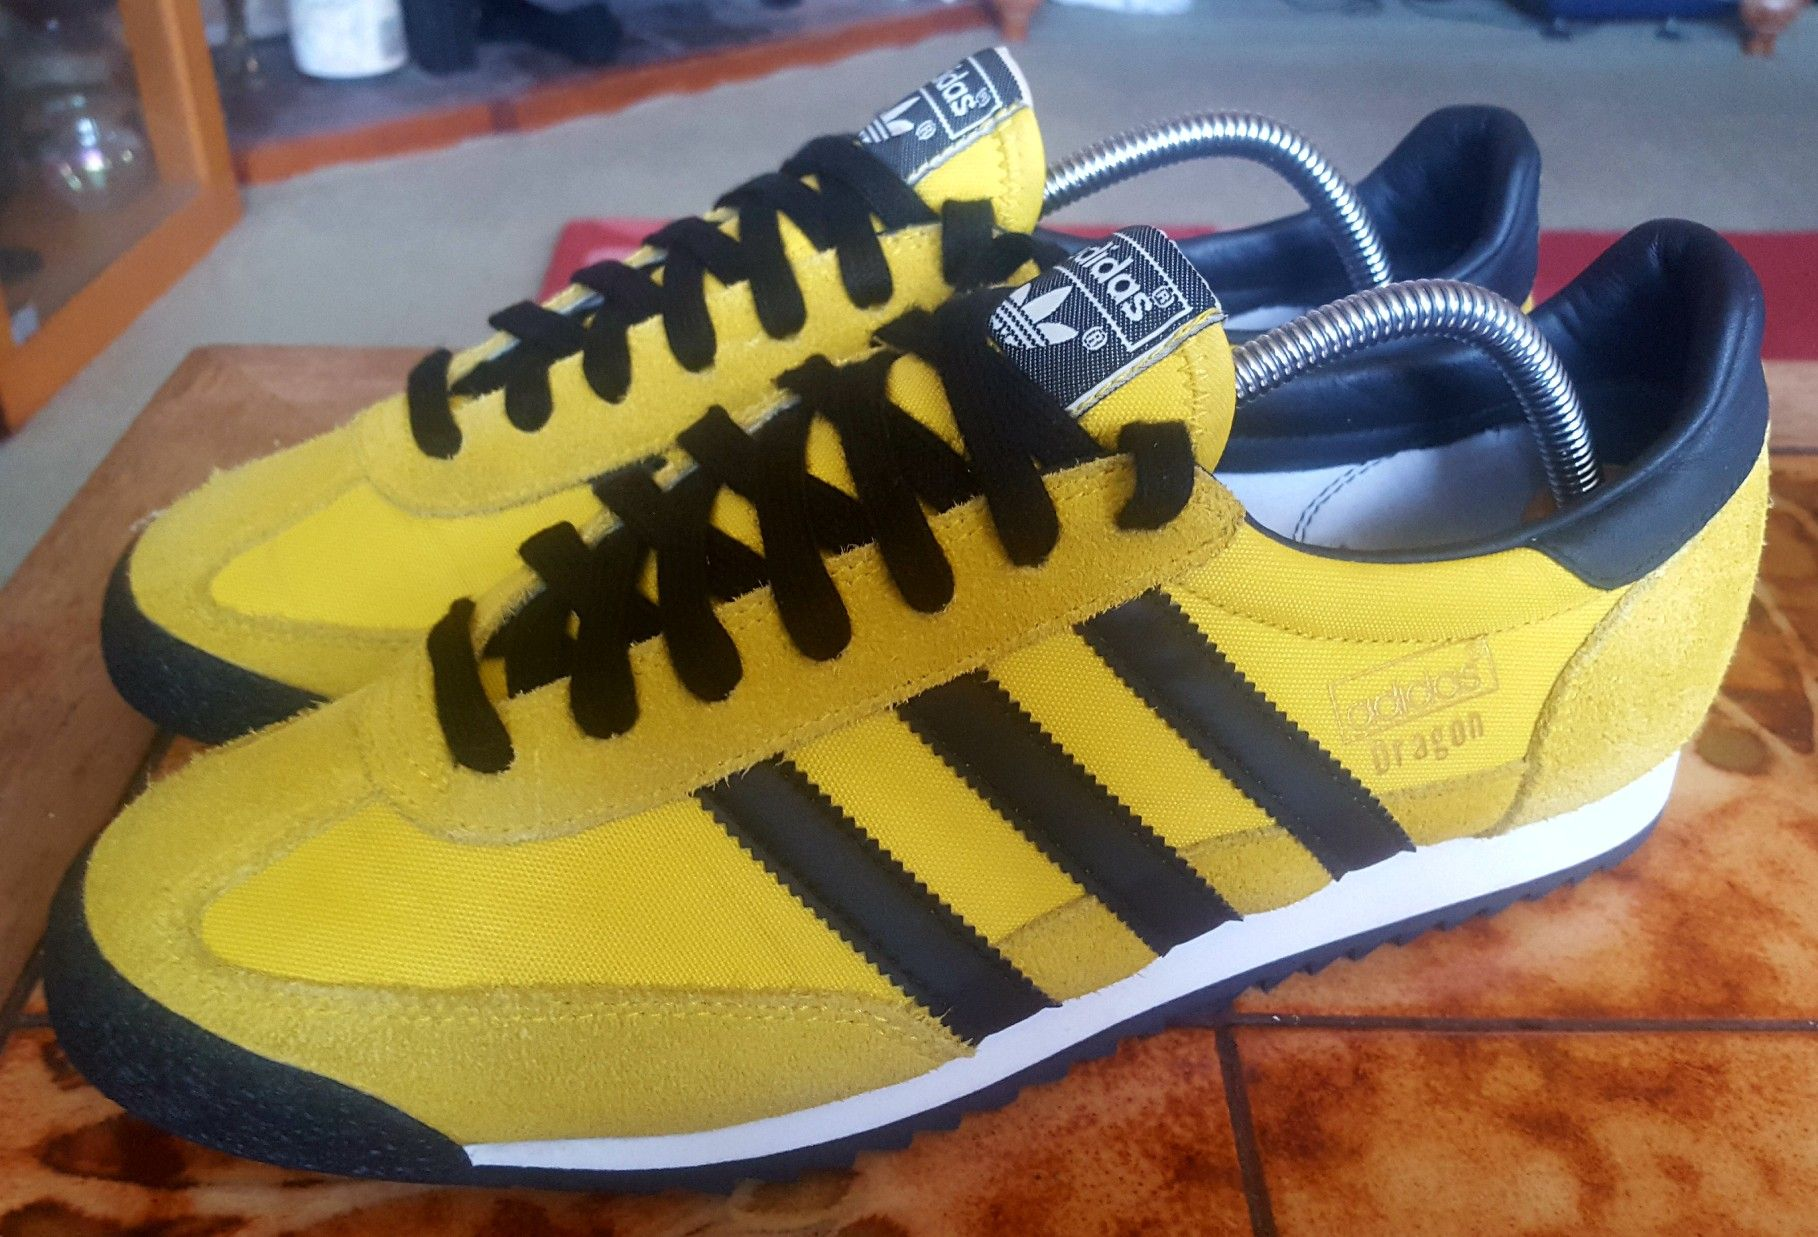 Finally landed a pair of yellow/black Adidas Dragon after 2 ...